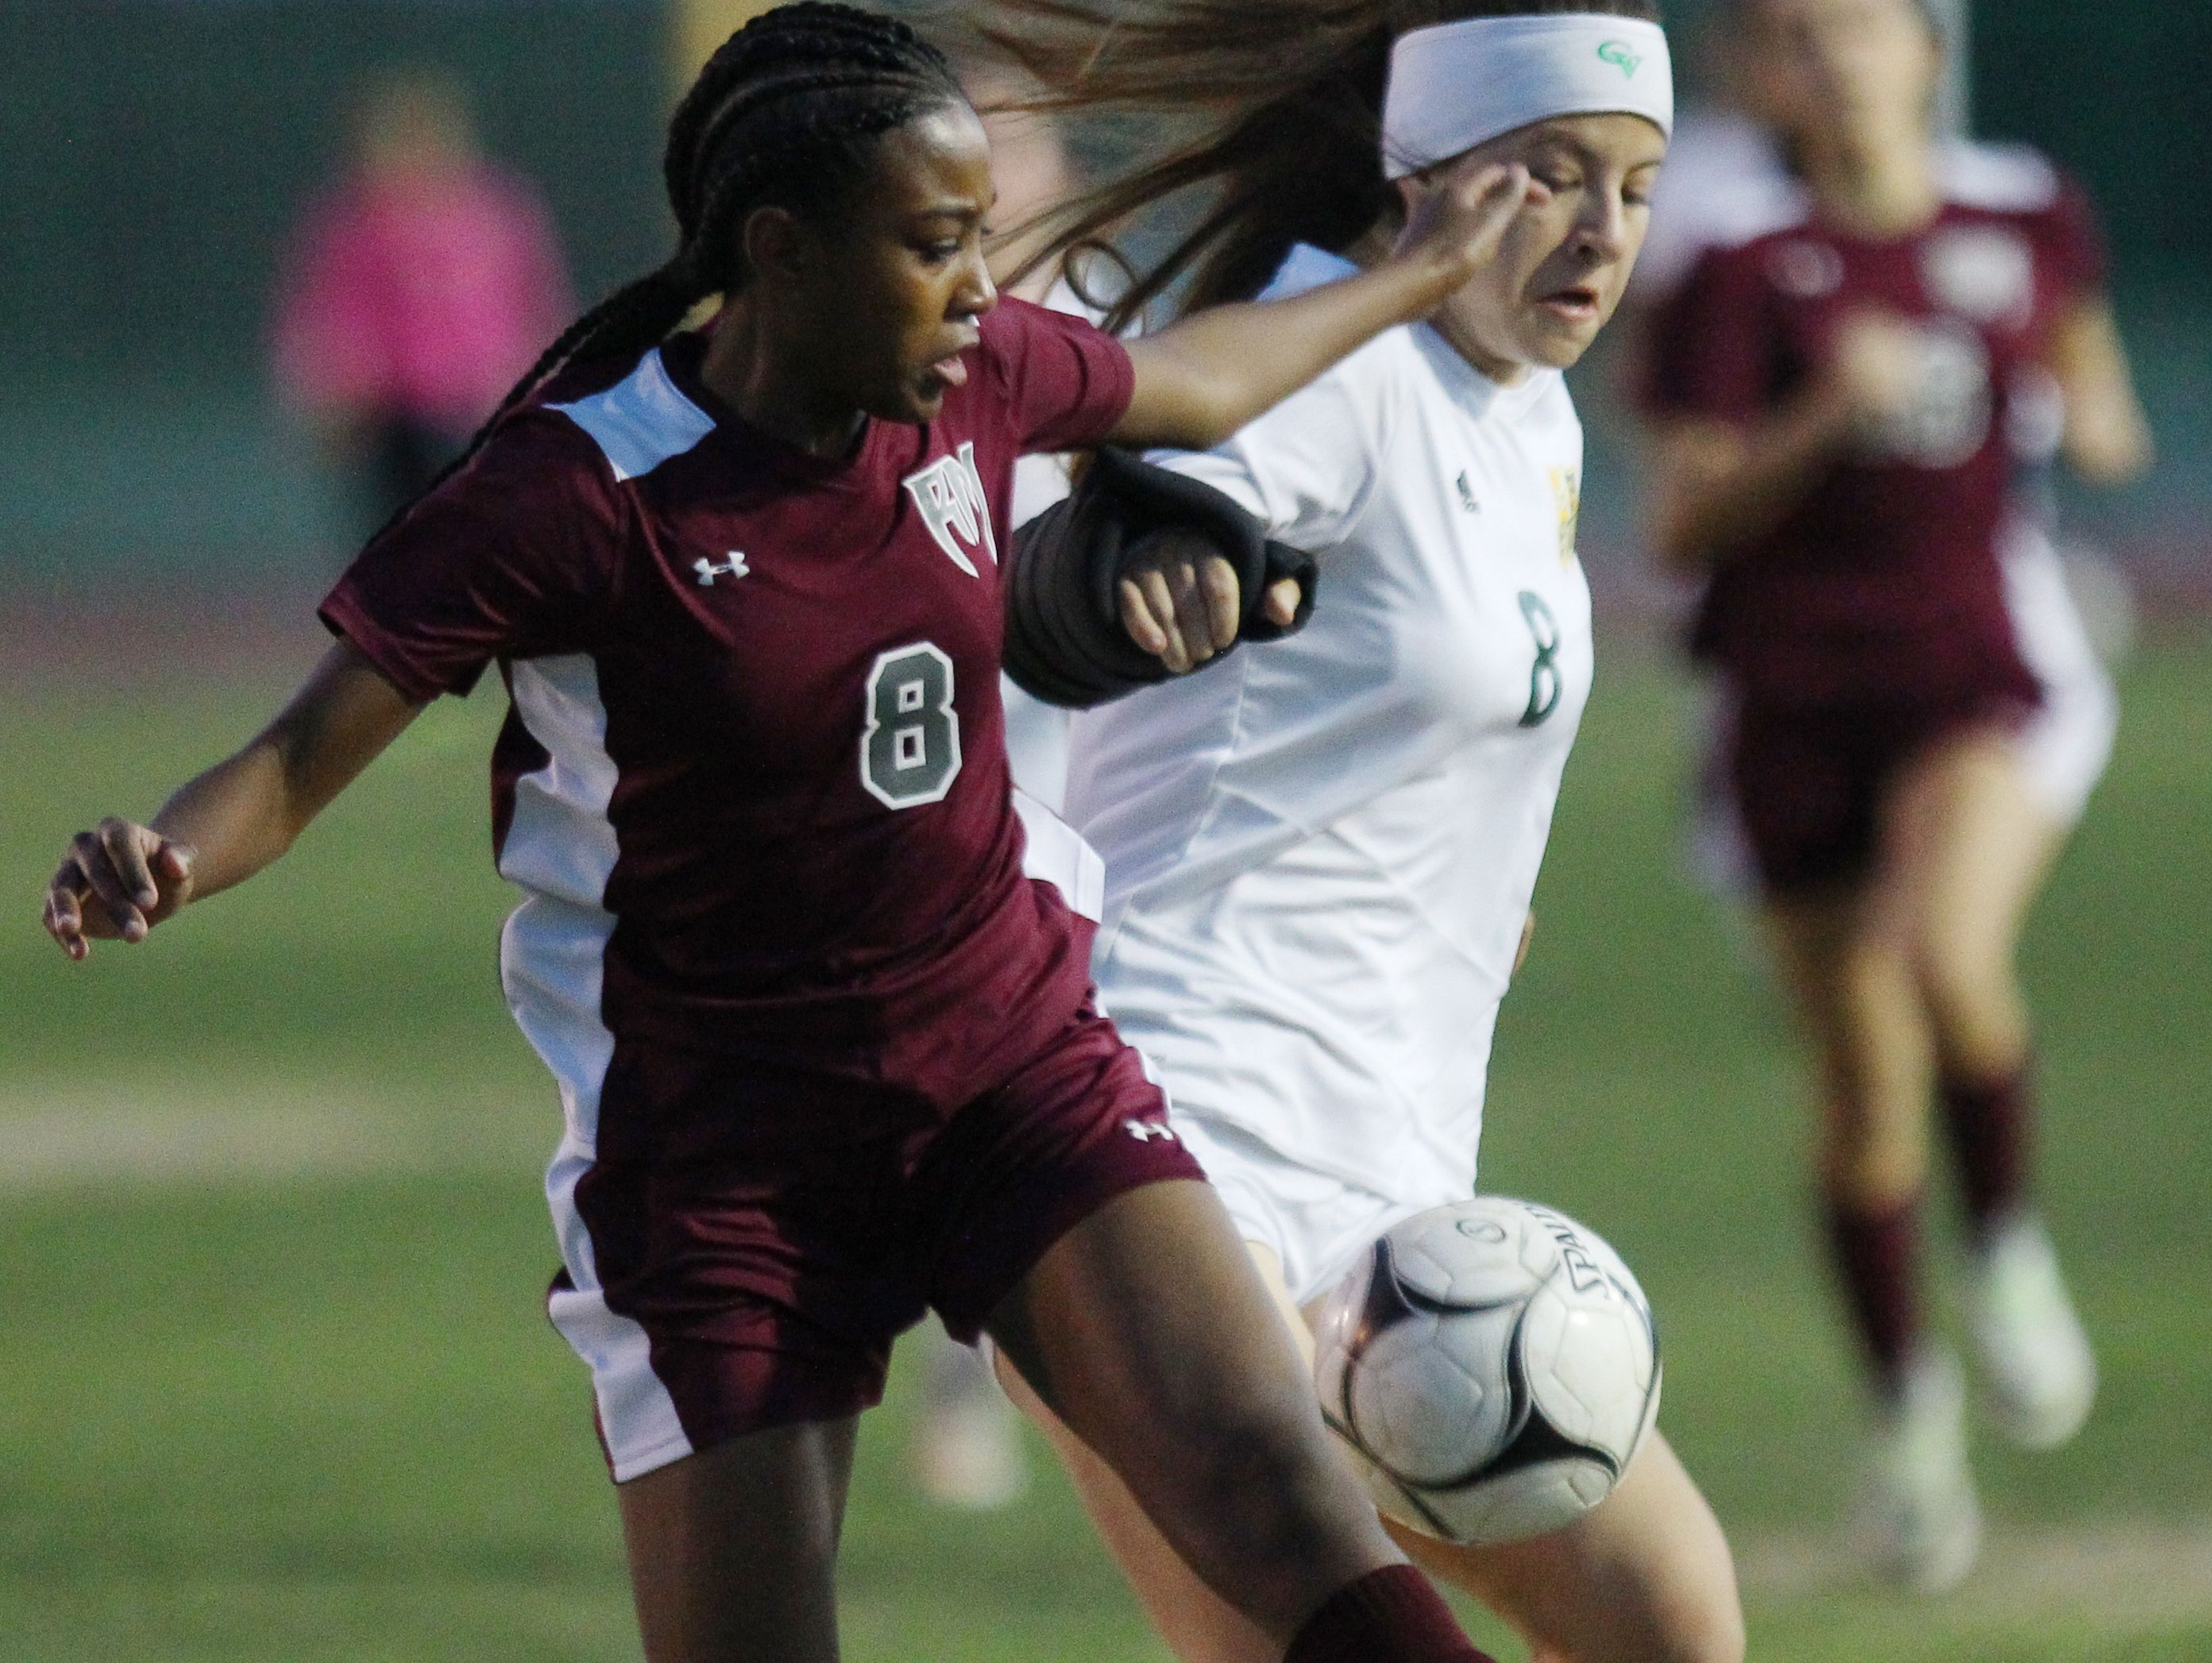 Rancho Mirage's Ailayah Carter keeps a close defense on Coachella Valley High School's Miranda Torres during their championship De Anza League in Thermal on February 7, 2017. Coachella won 2-0.